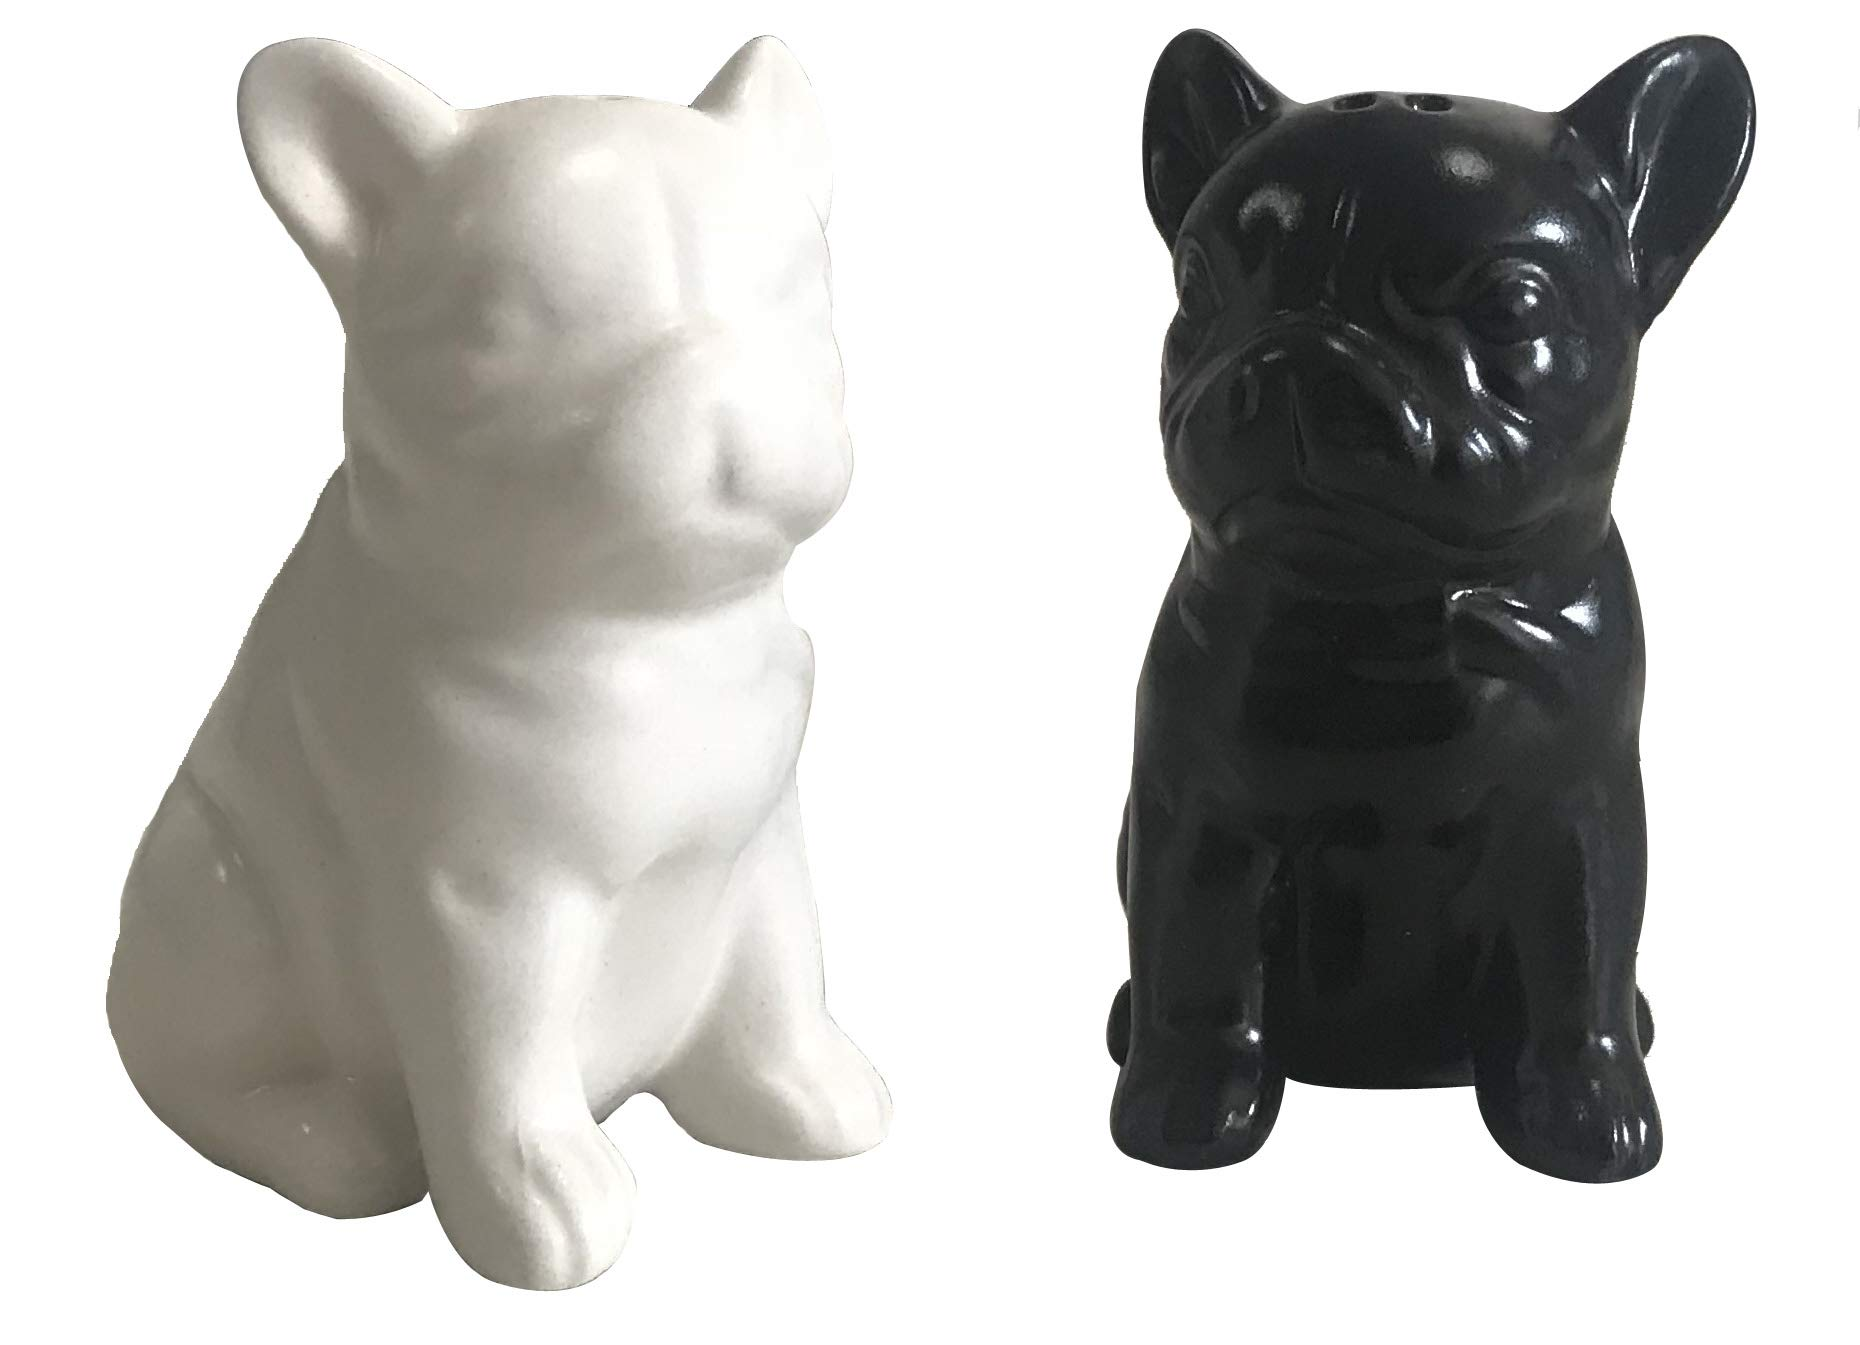 AFYBL Creative Funny Earthenware Bulldog Salt and Pepper Shakers,Pack of 2